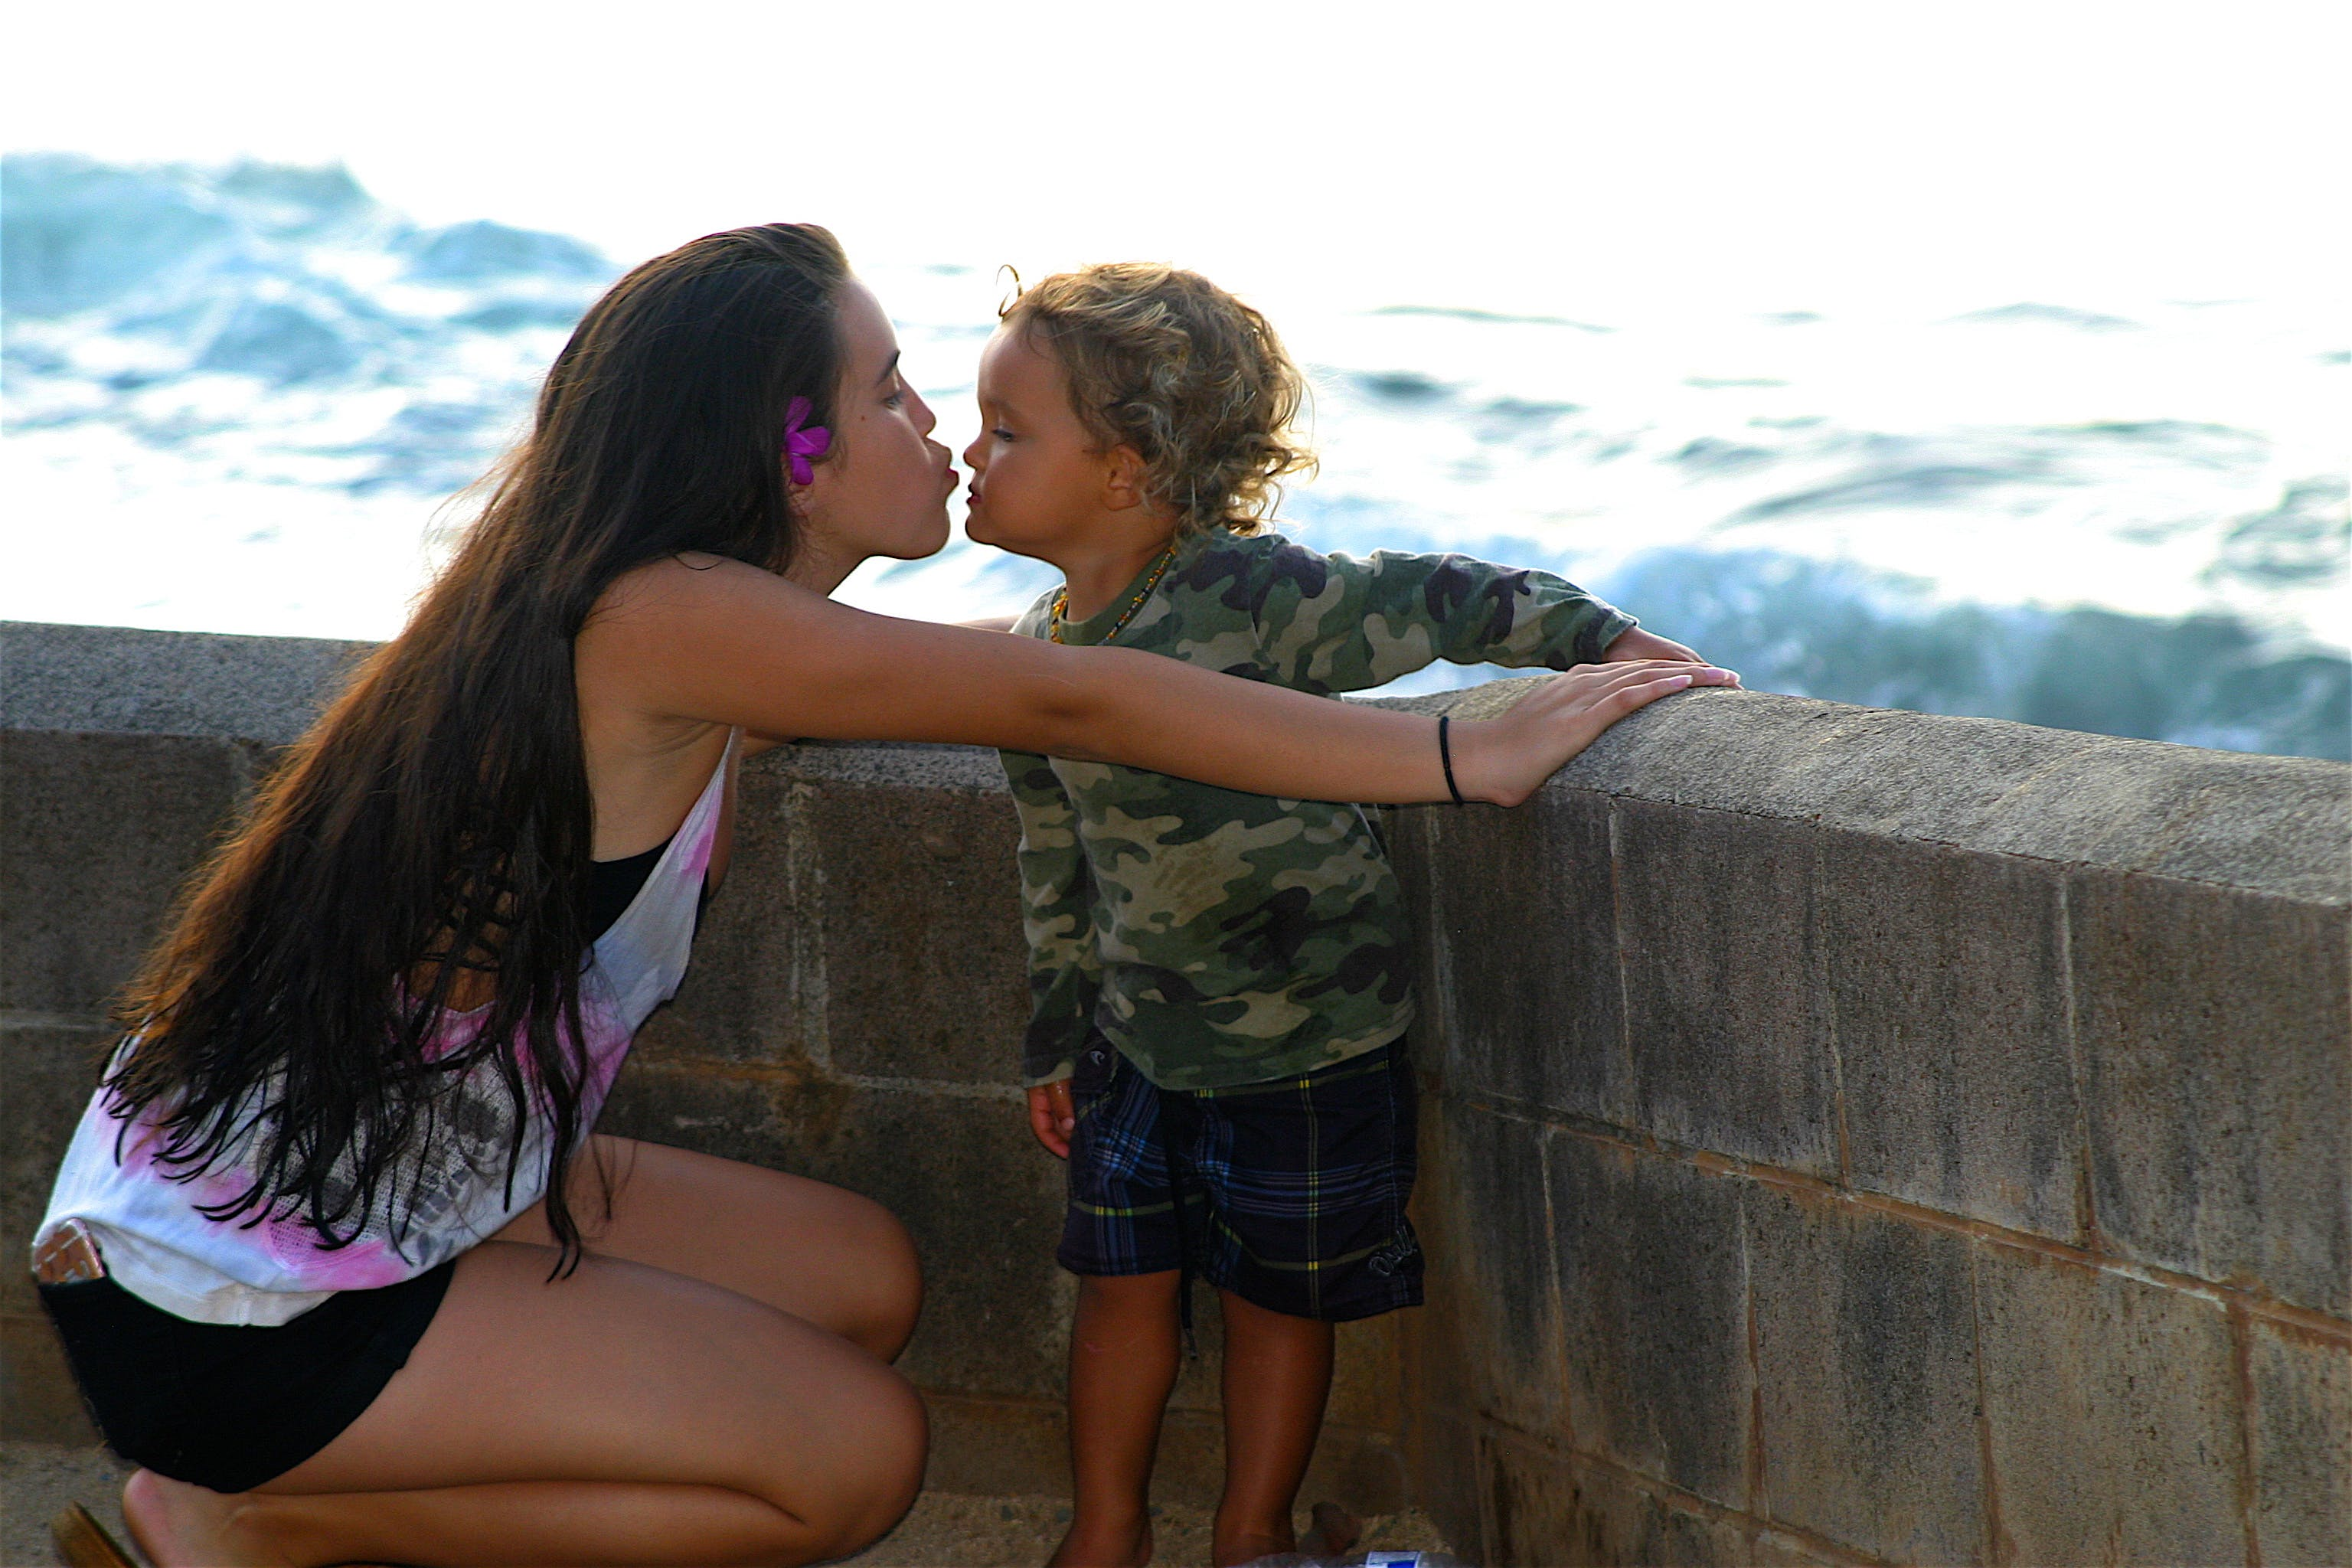 Free stock photo of beach, love, mother and child, people